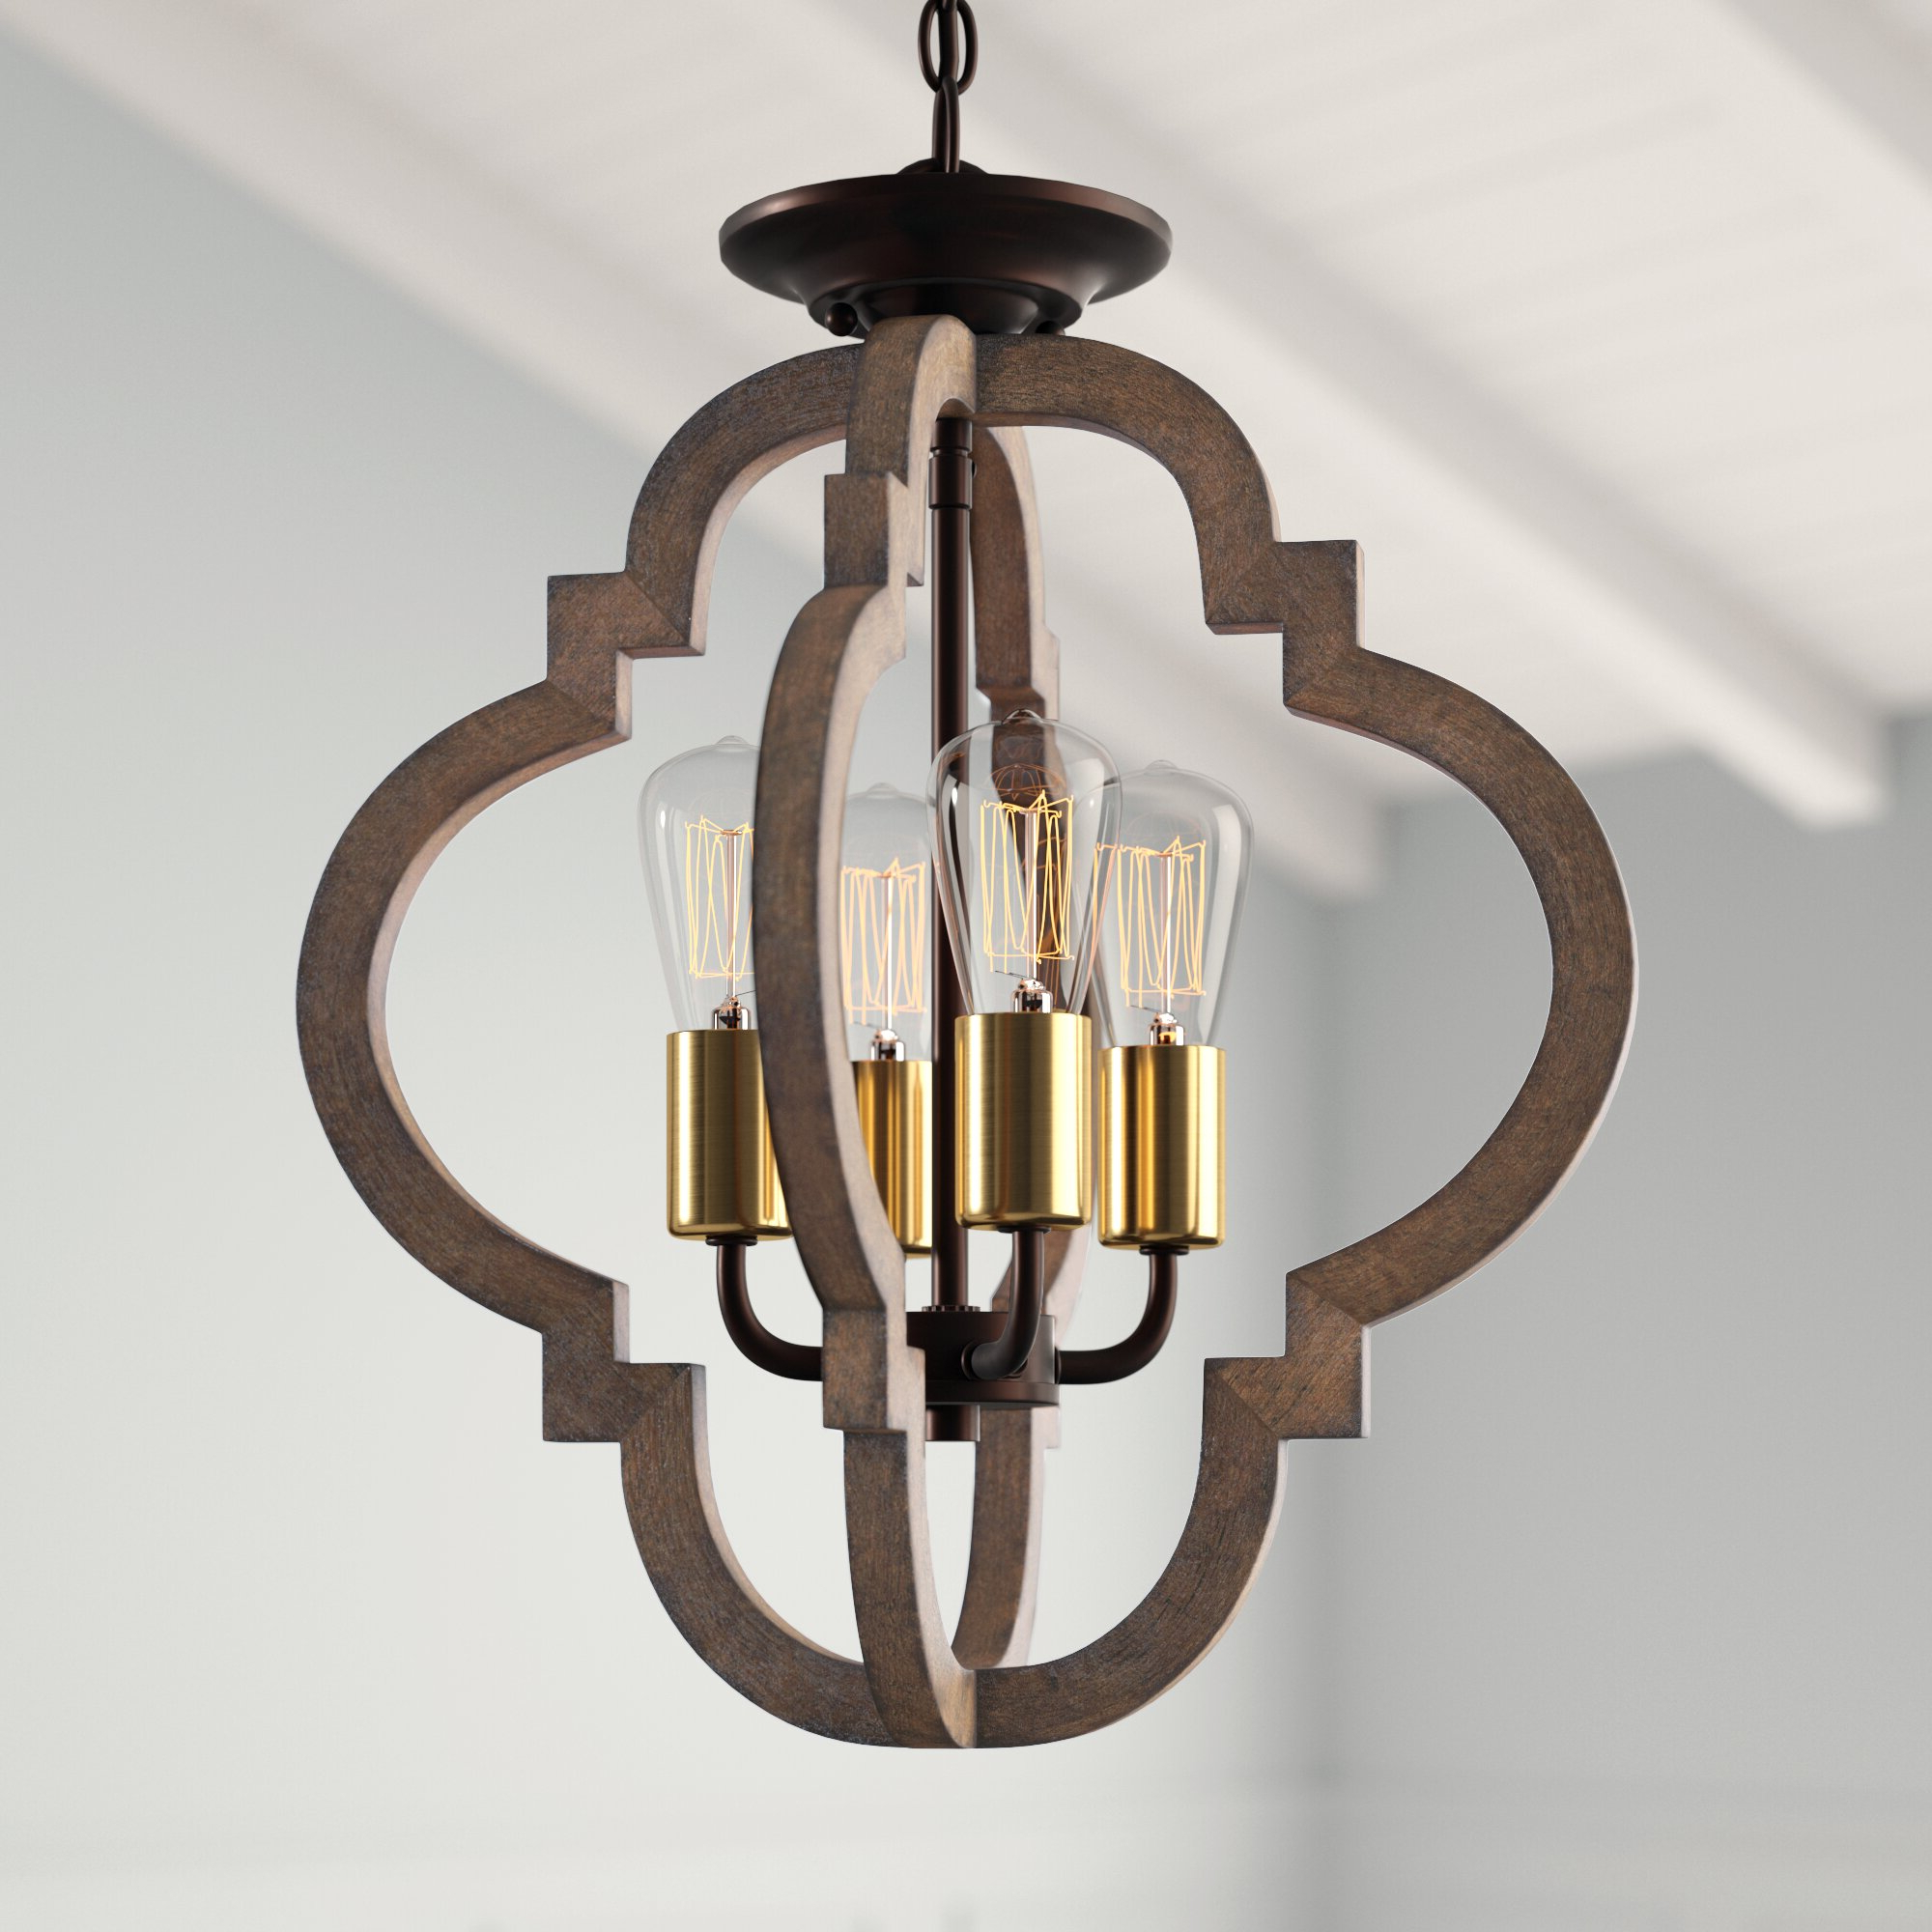 Kaycee 4-Light Geometric Chandelier within Latest Kaycee 4-Light Geometric Chandeliers